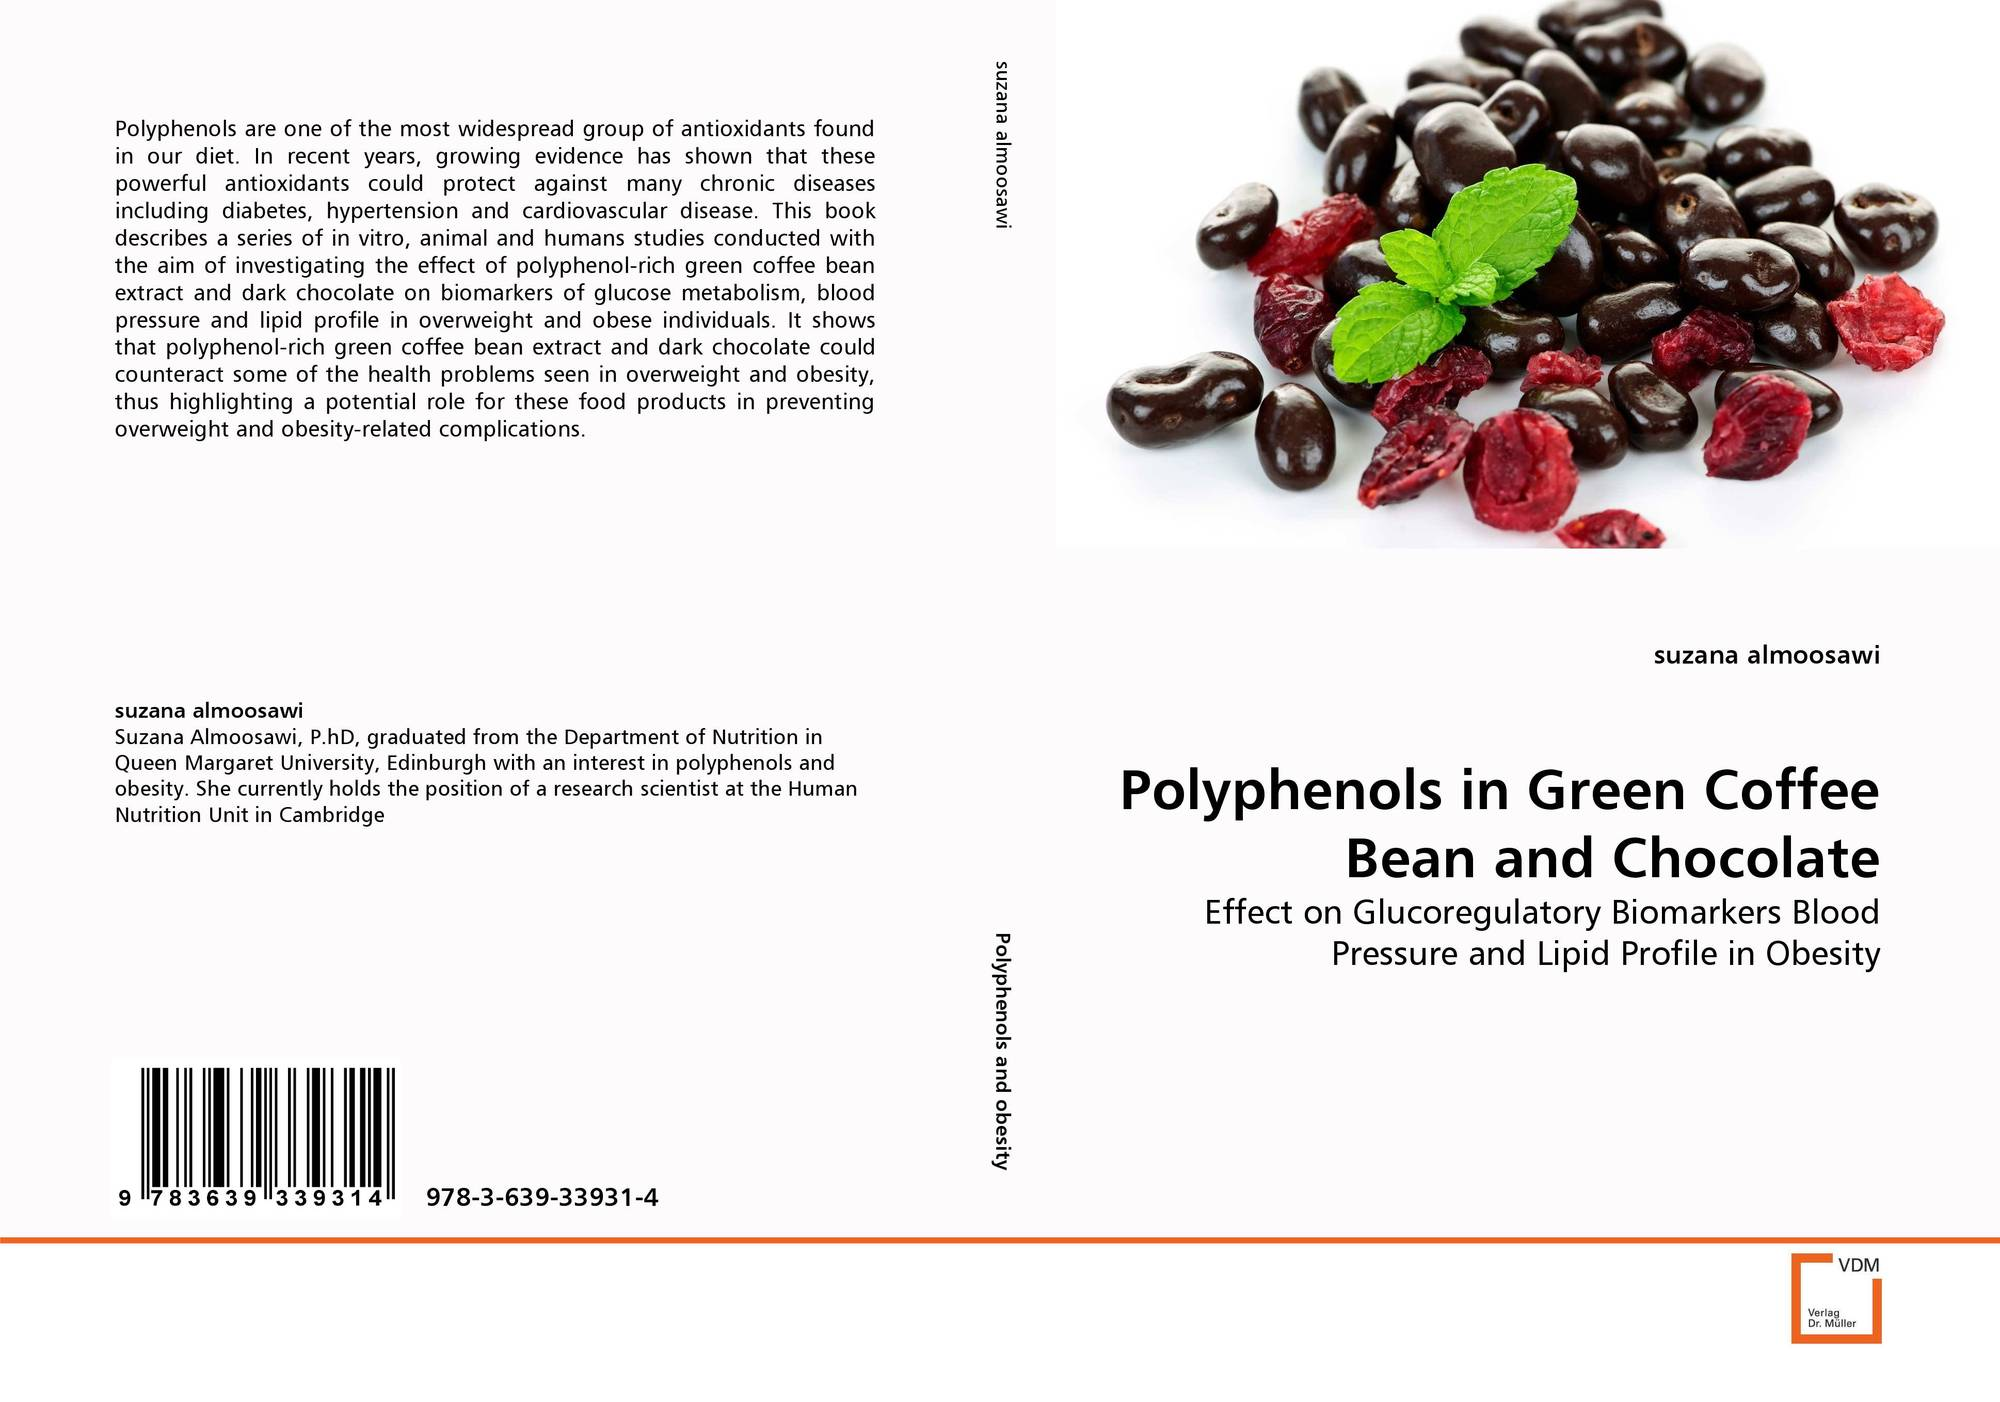 Polyphenols in Green Coffee Bean and Chocolate, 978-3-639 ...